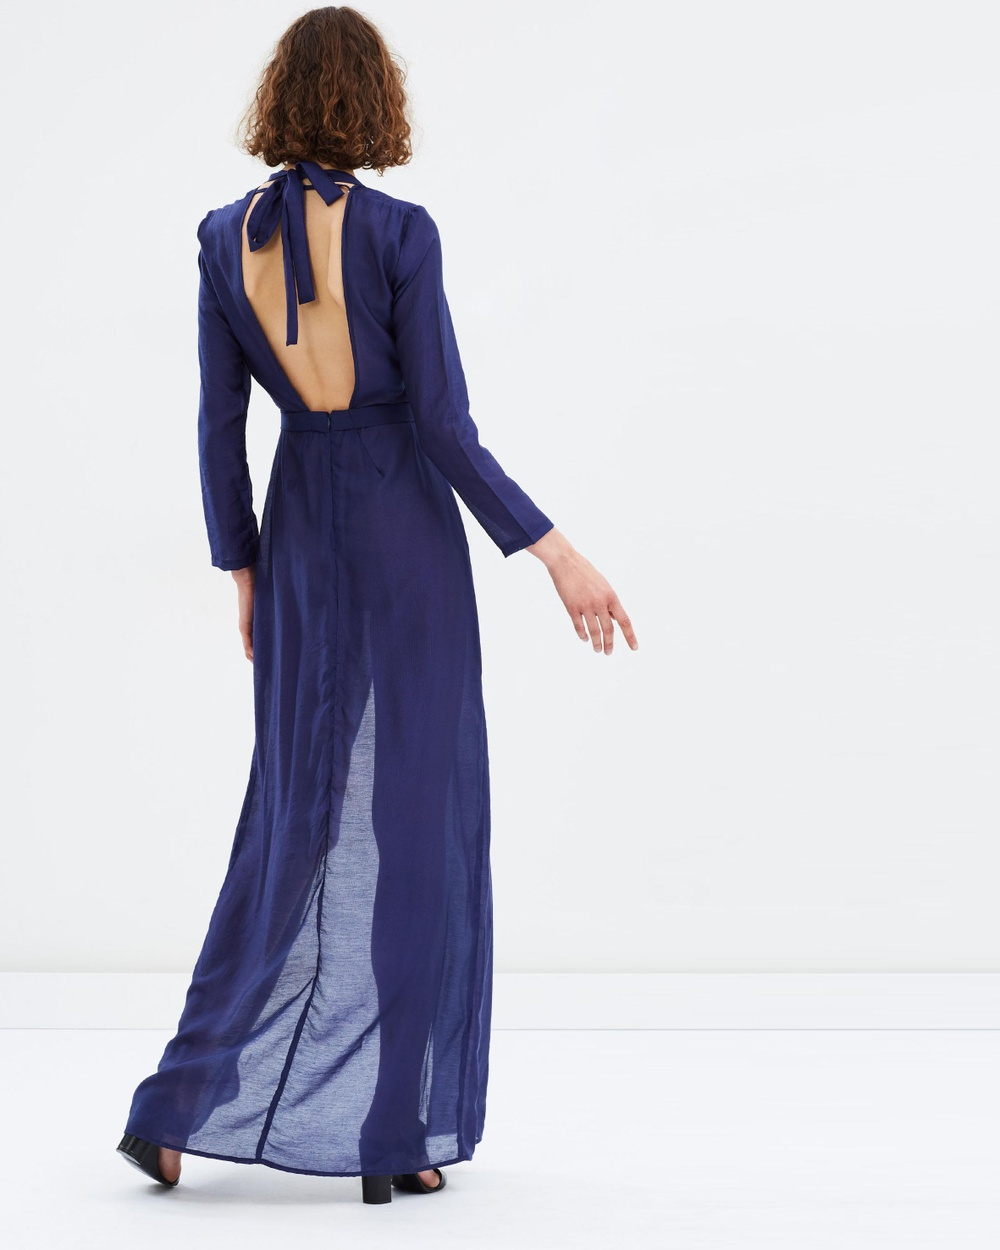 PFEIFFER Orion Gown Dresses Midnight Orion Gown